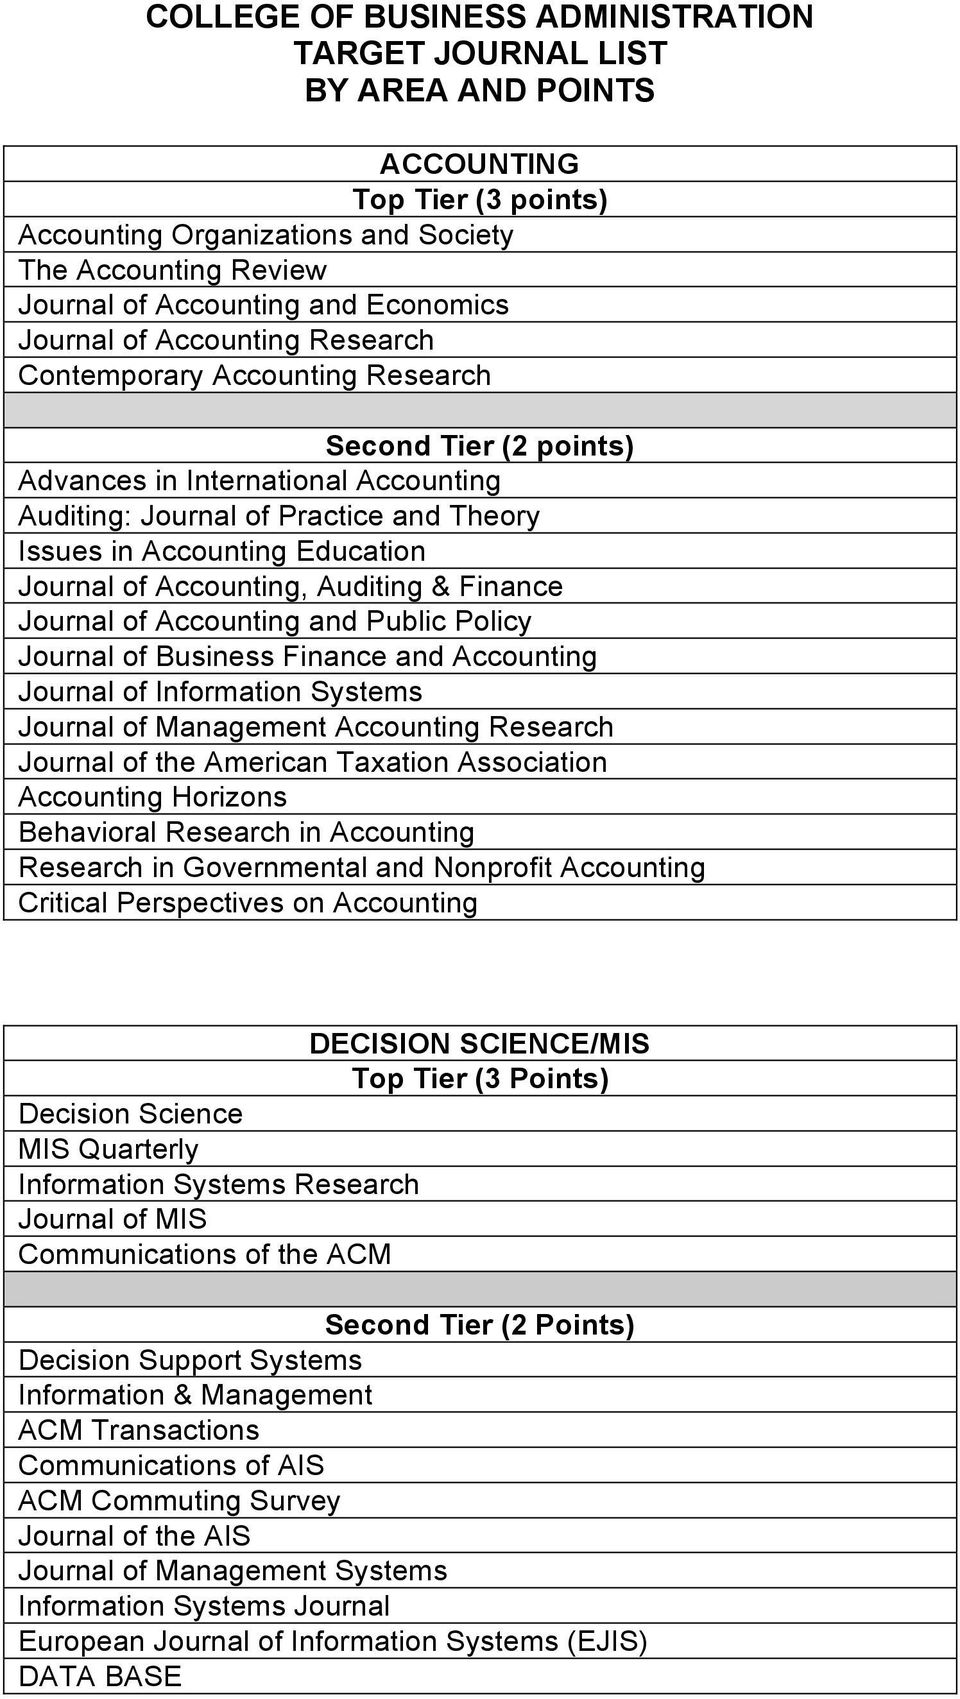 Finance Journal of Accounting and Public Policy Journal of Business Finance and Accounting Journal of Information Systems Journal of Management Accounting Research Journal of the American Taxation